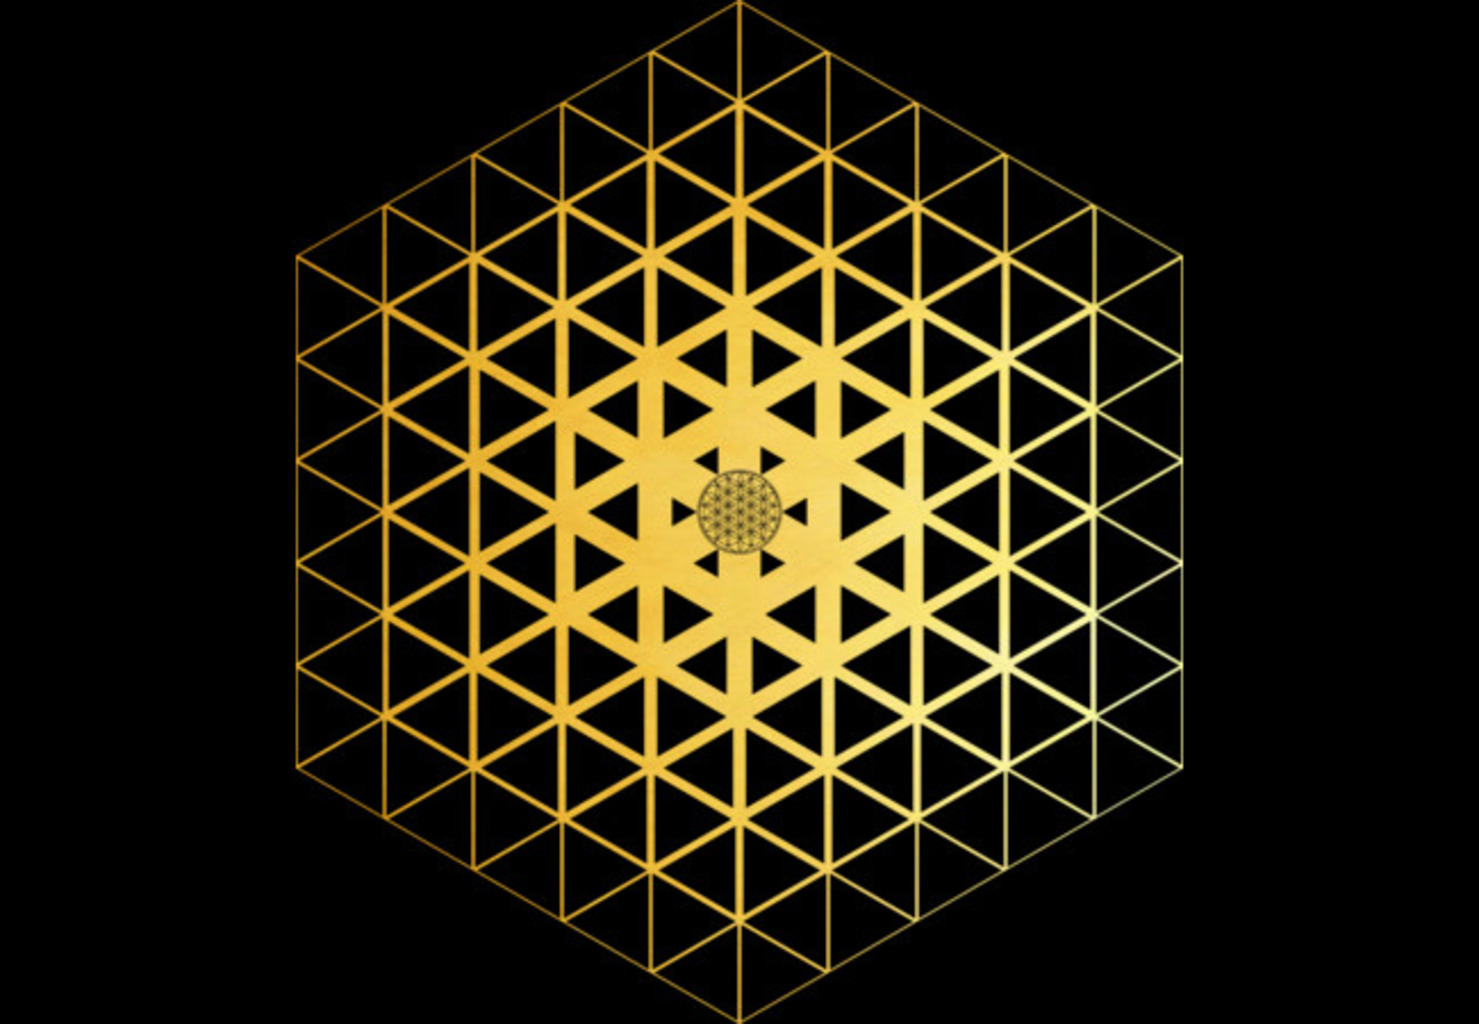 Design by Humans: Cube